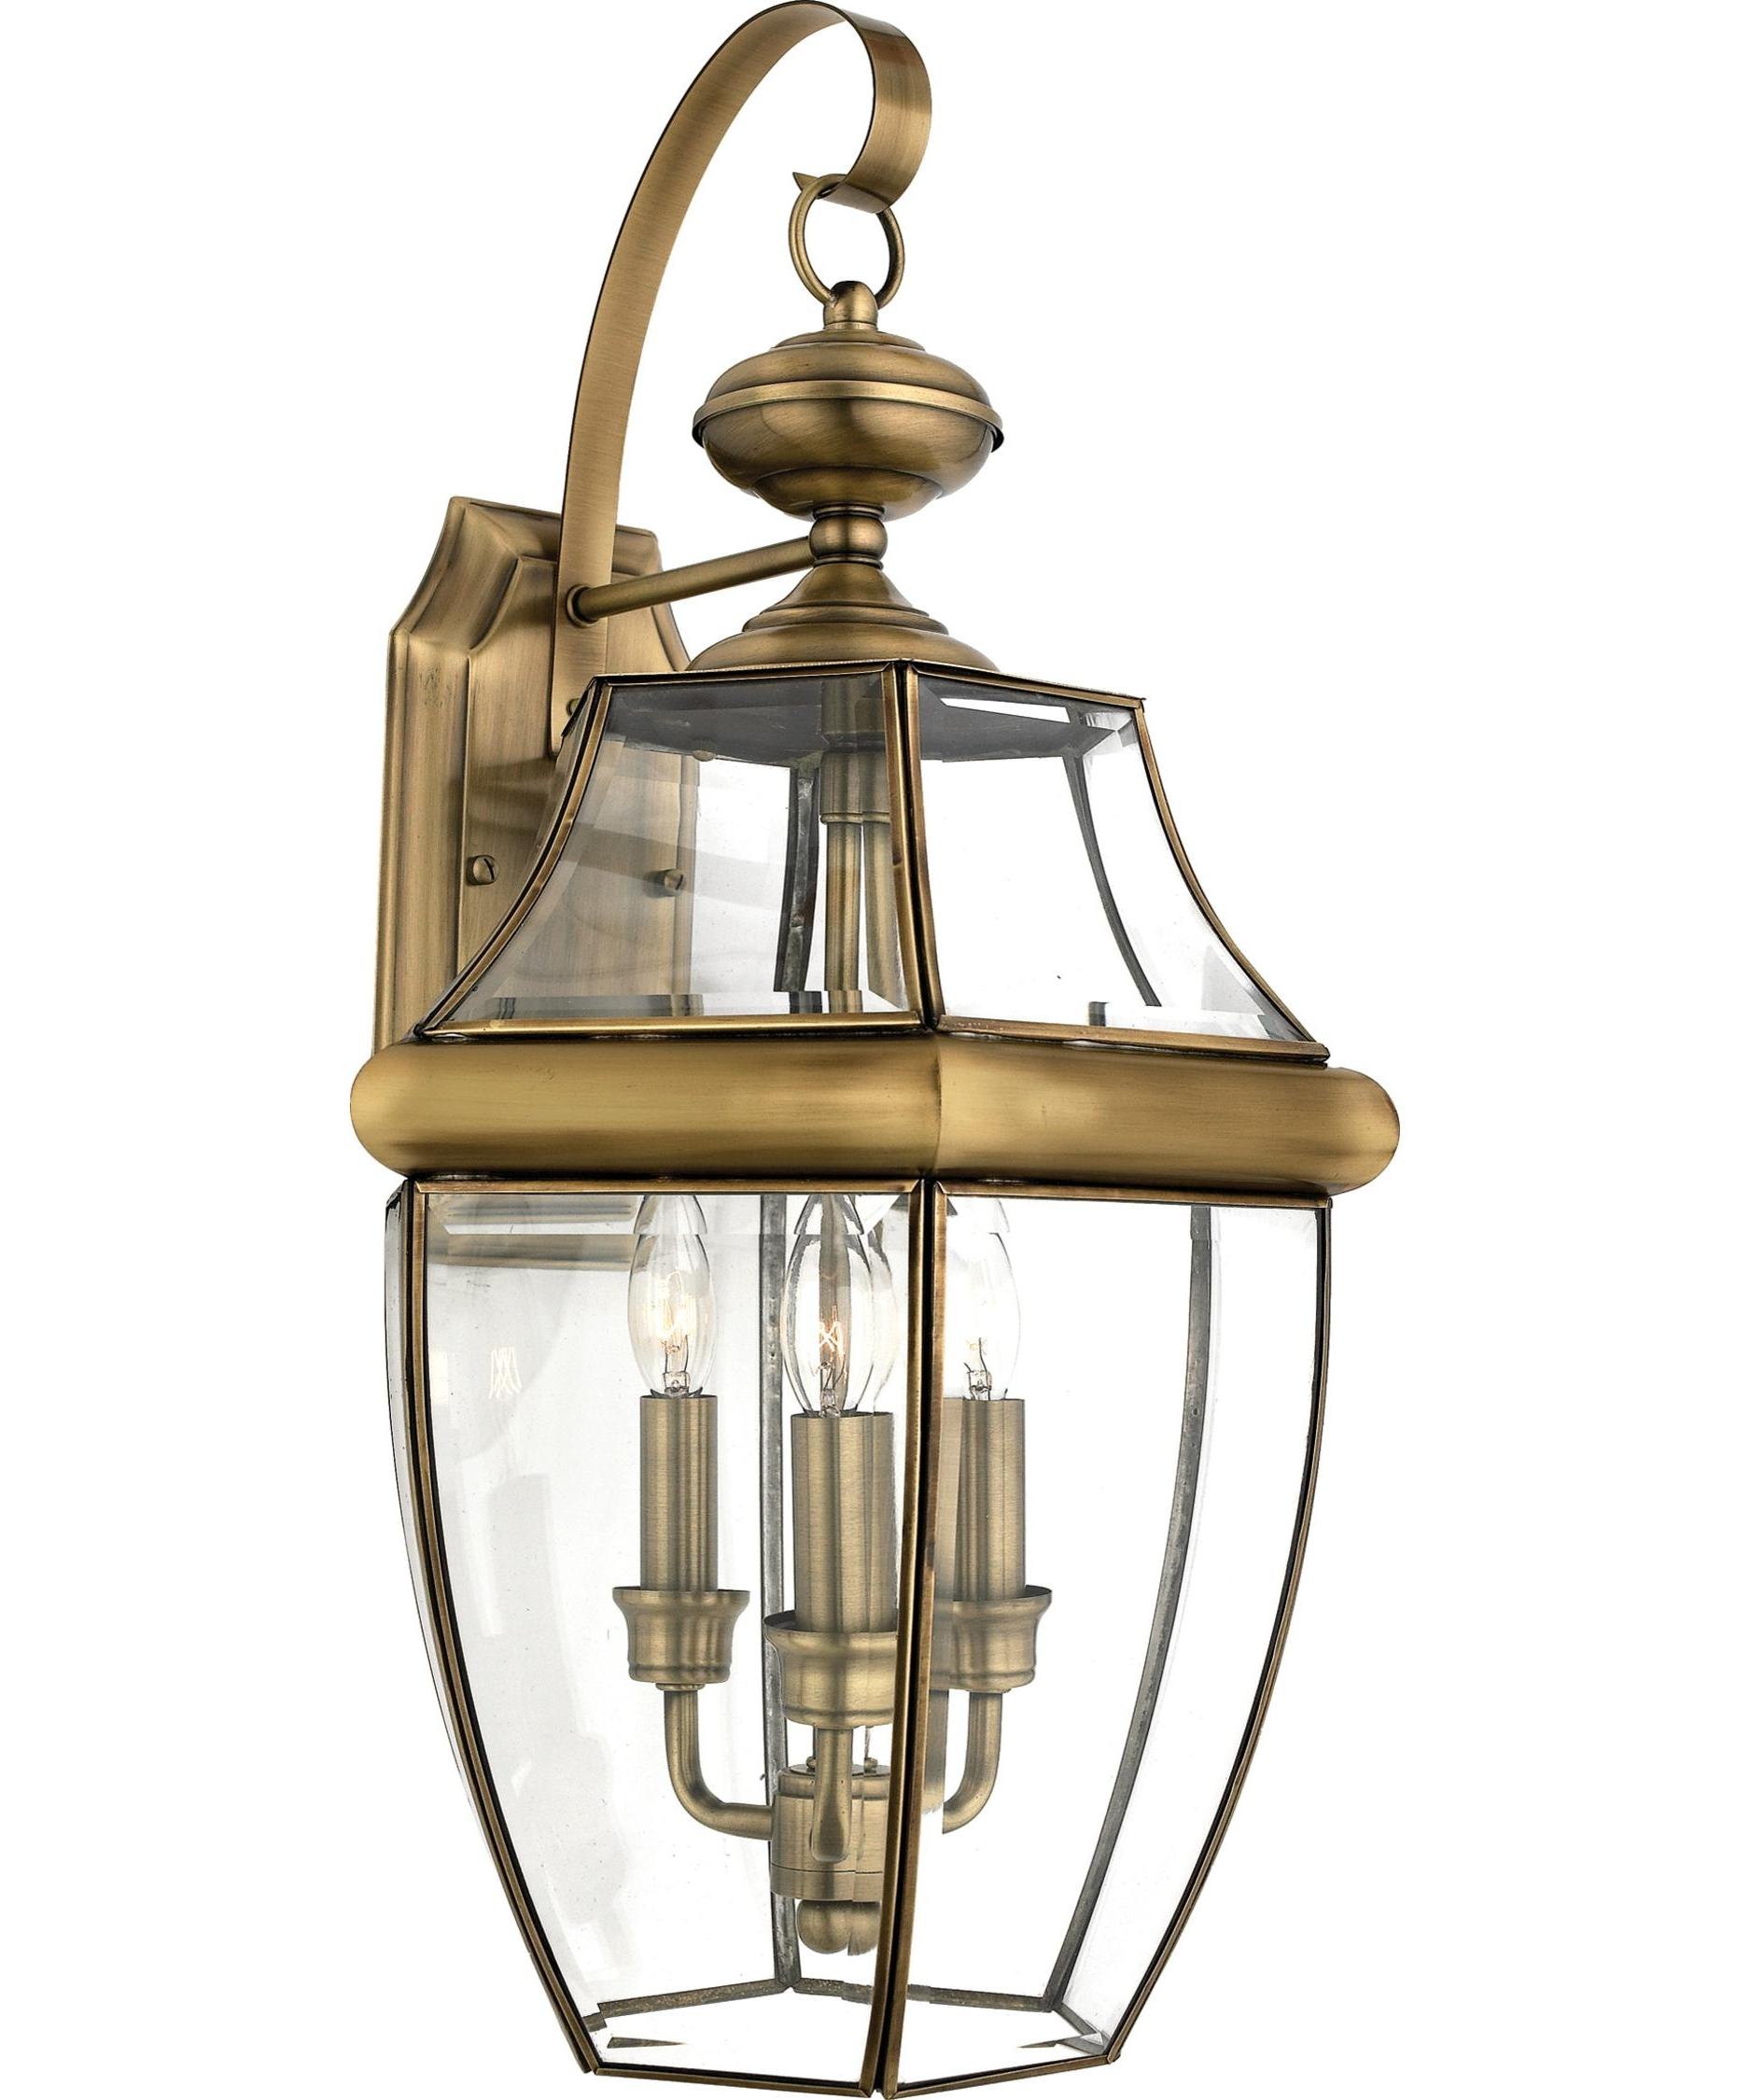 Quoizel Ny8318 Newbury 13 Inch Wide 3 Light Outdoor Wall Light For Famous Quoizel Outdoor Wall Lighting (Gallery 19 of 20)